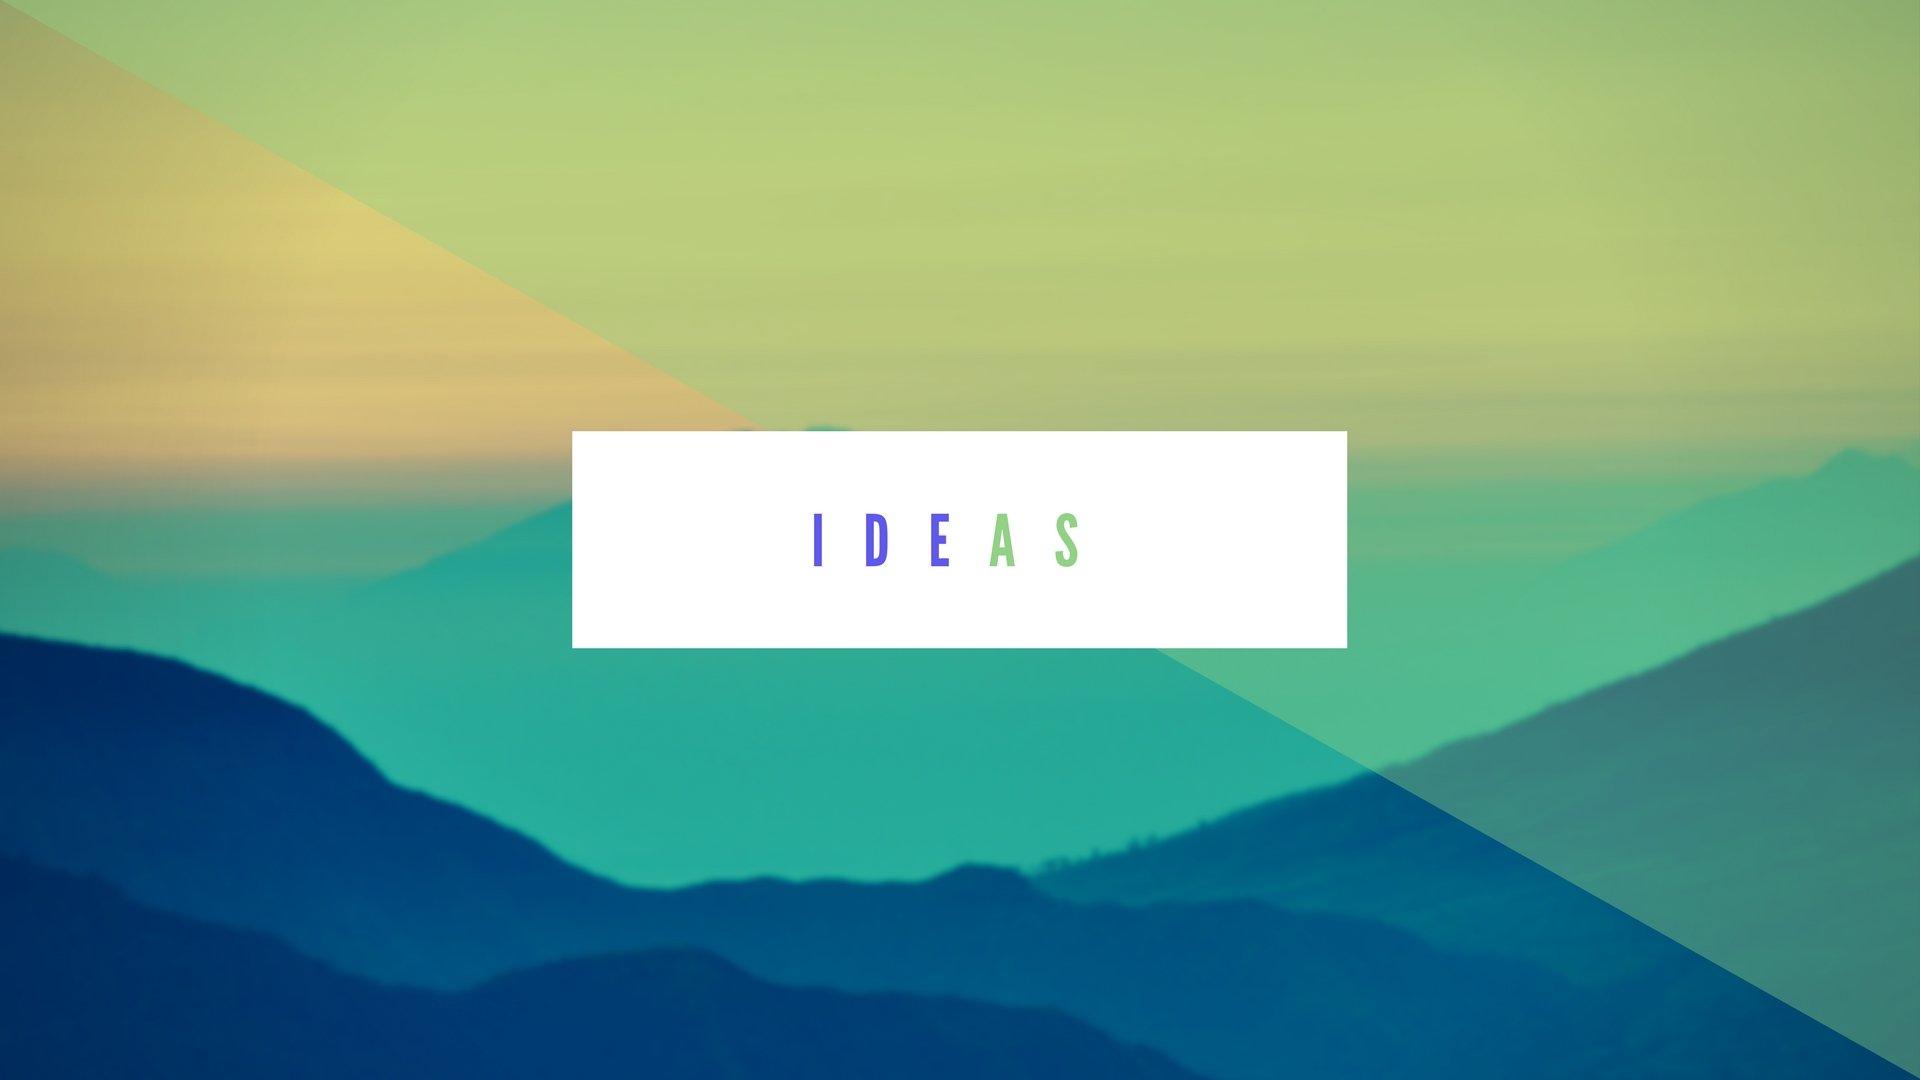 ideas-into-actions